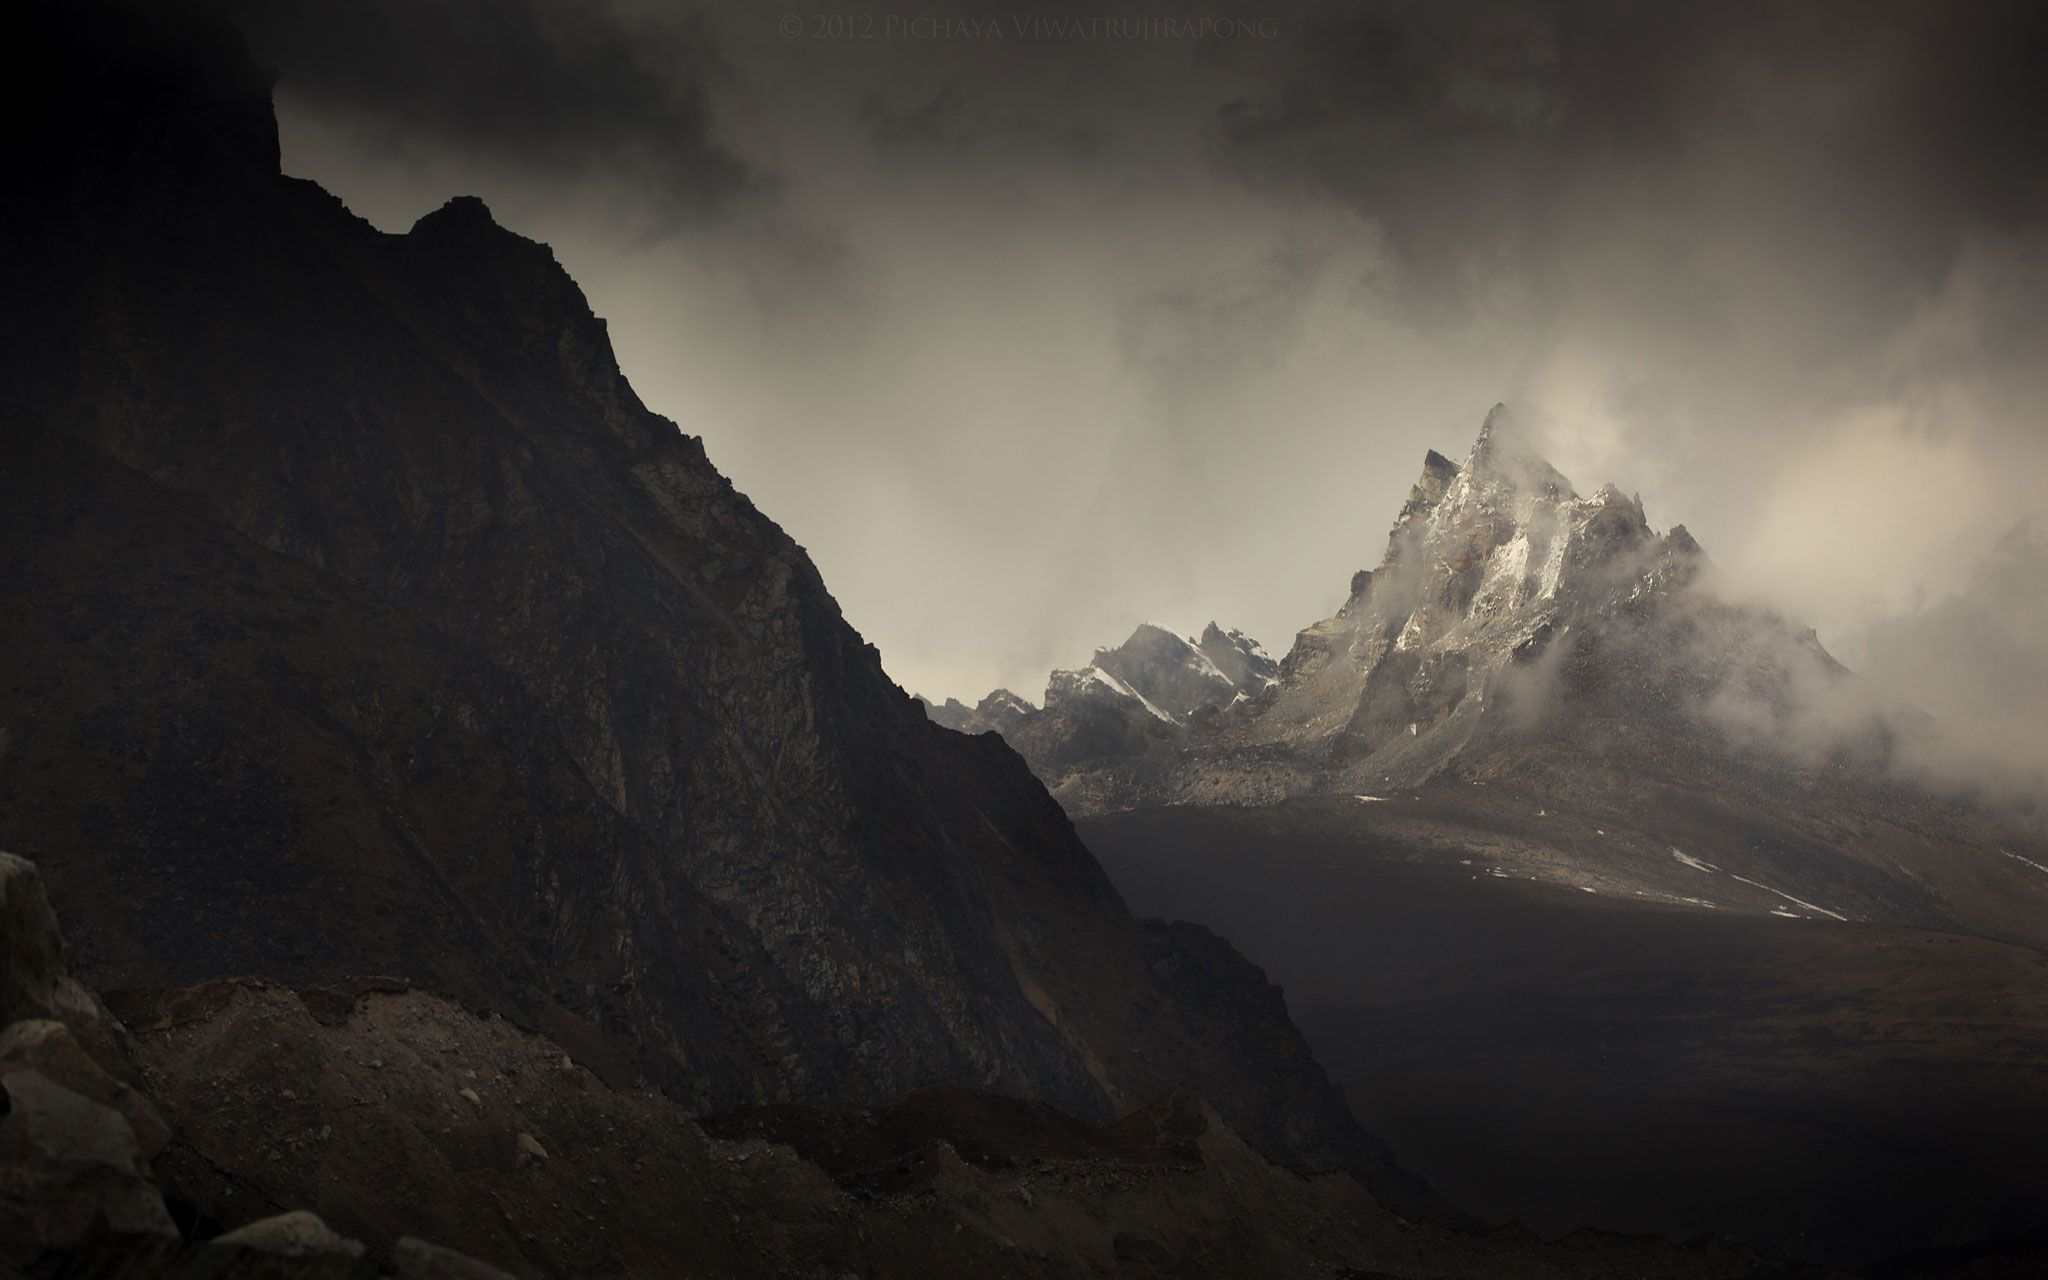 Misty Mountains Wallpapers Top Free Misty Mountains Backgrounds